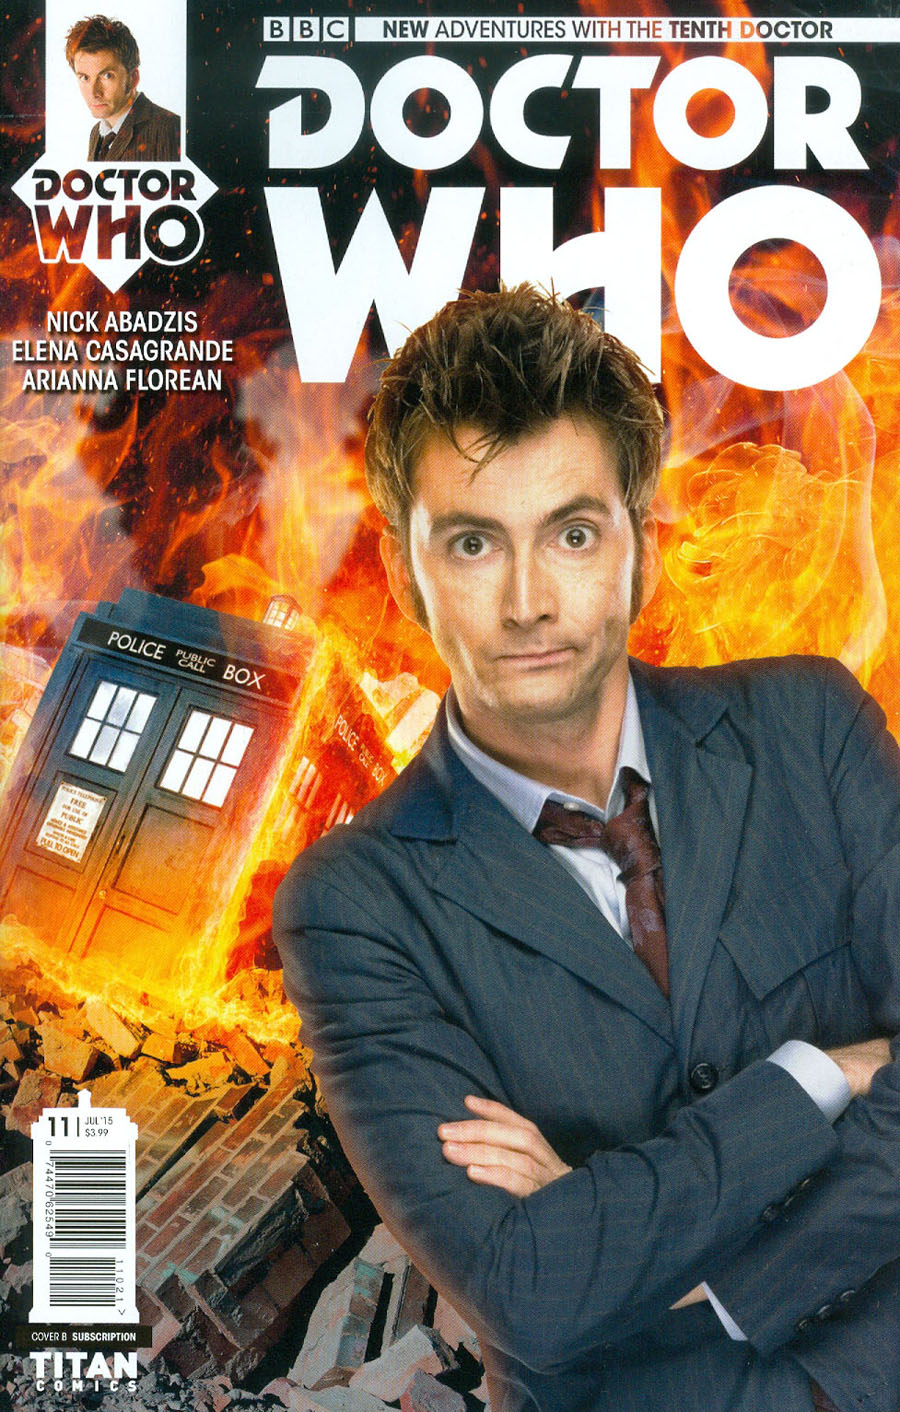 Doctor Who 10th Doctor #11 Cover B Variant Photo Subscription Cover